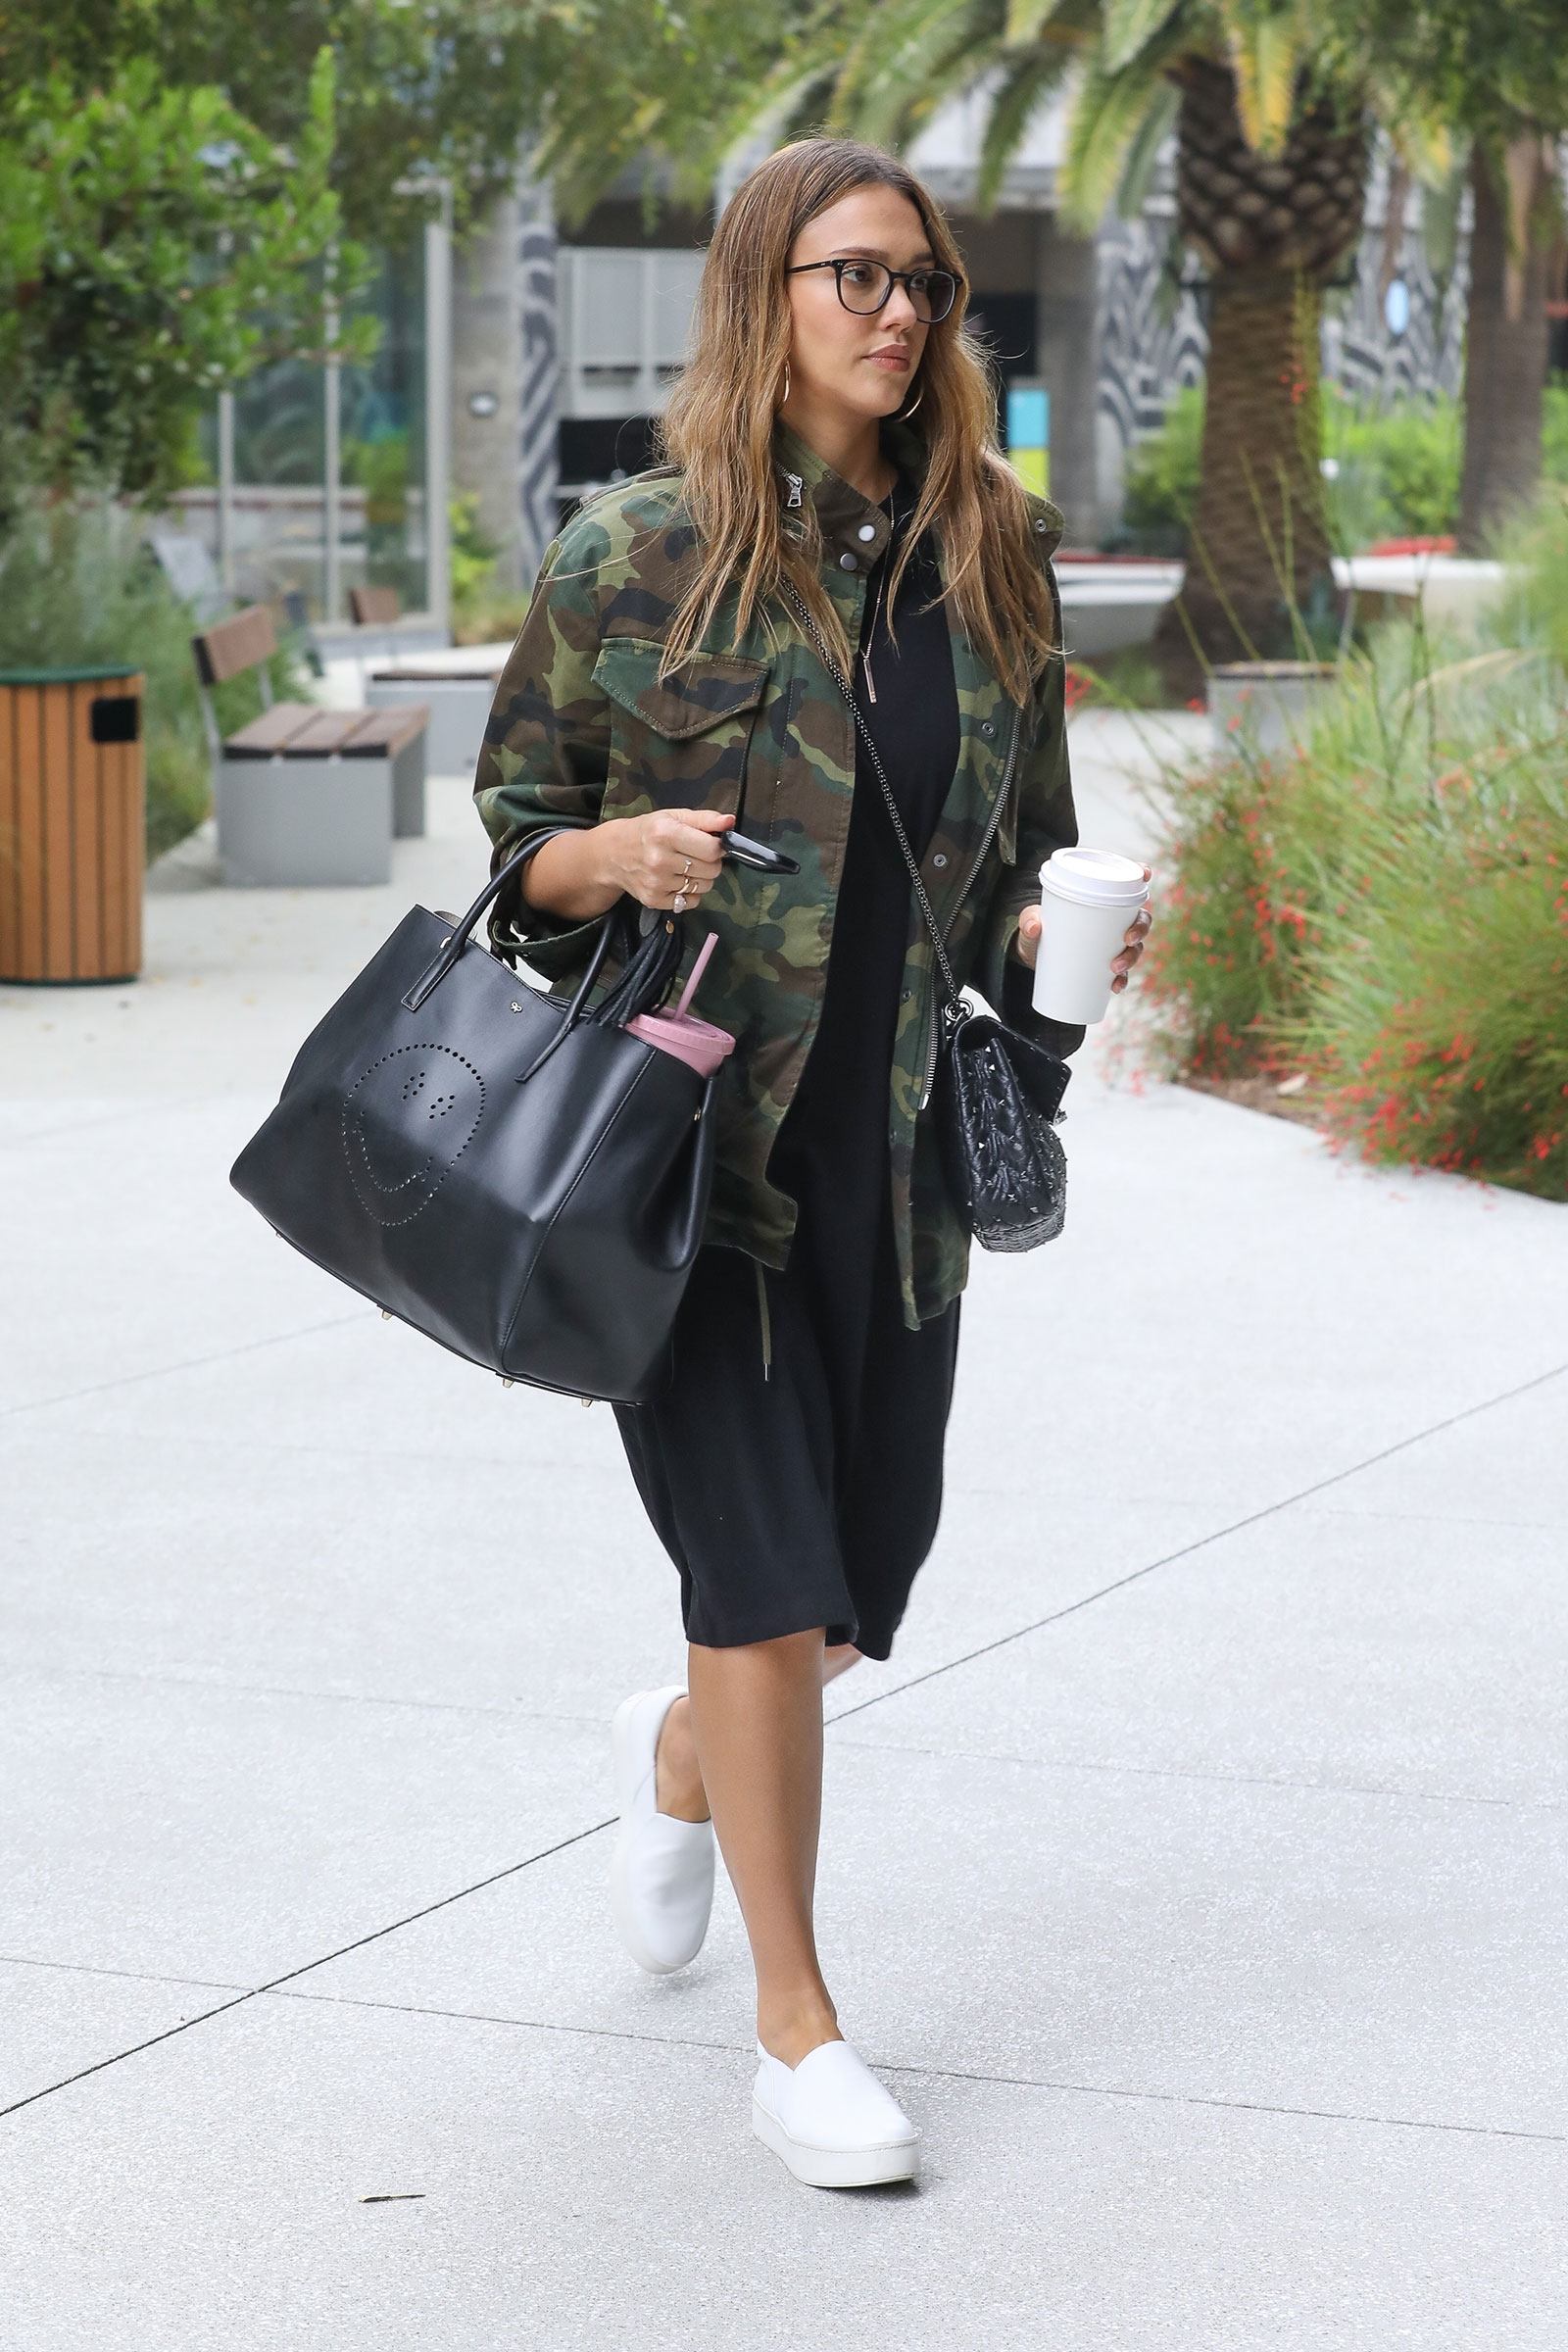 Jessica Alba The Budget Babe Affordable Fashion Style Blog